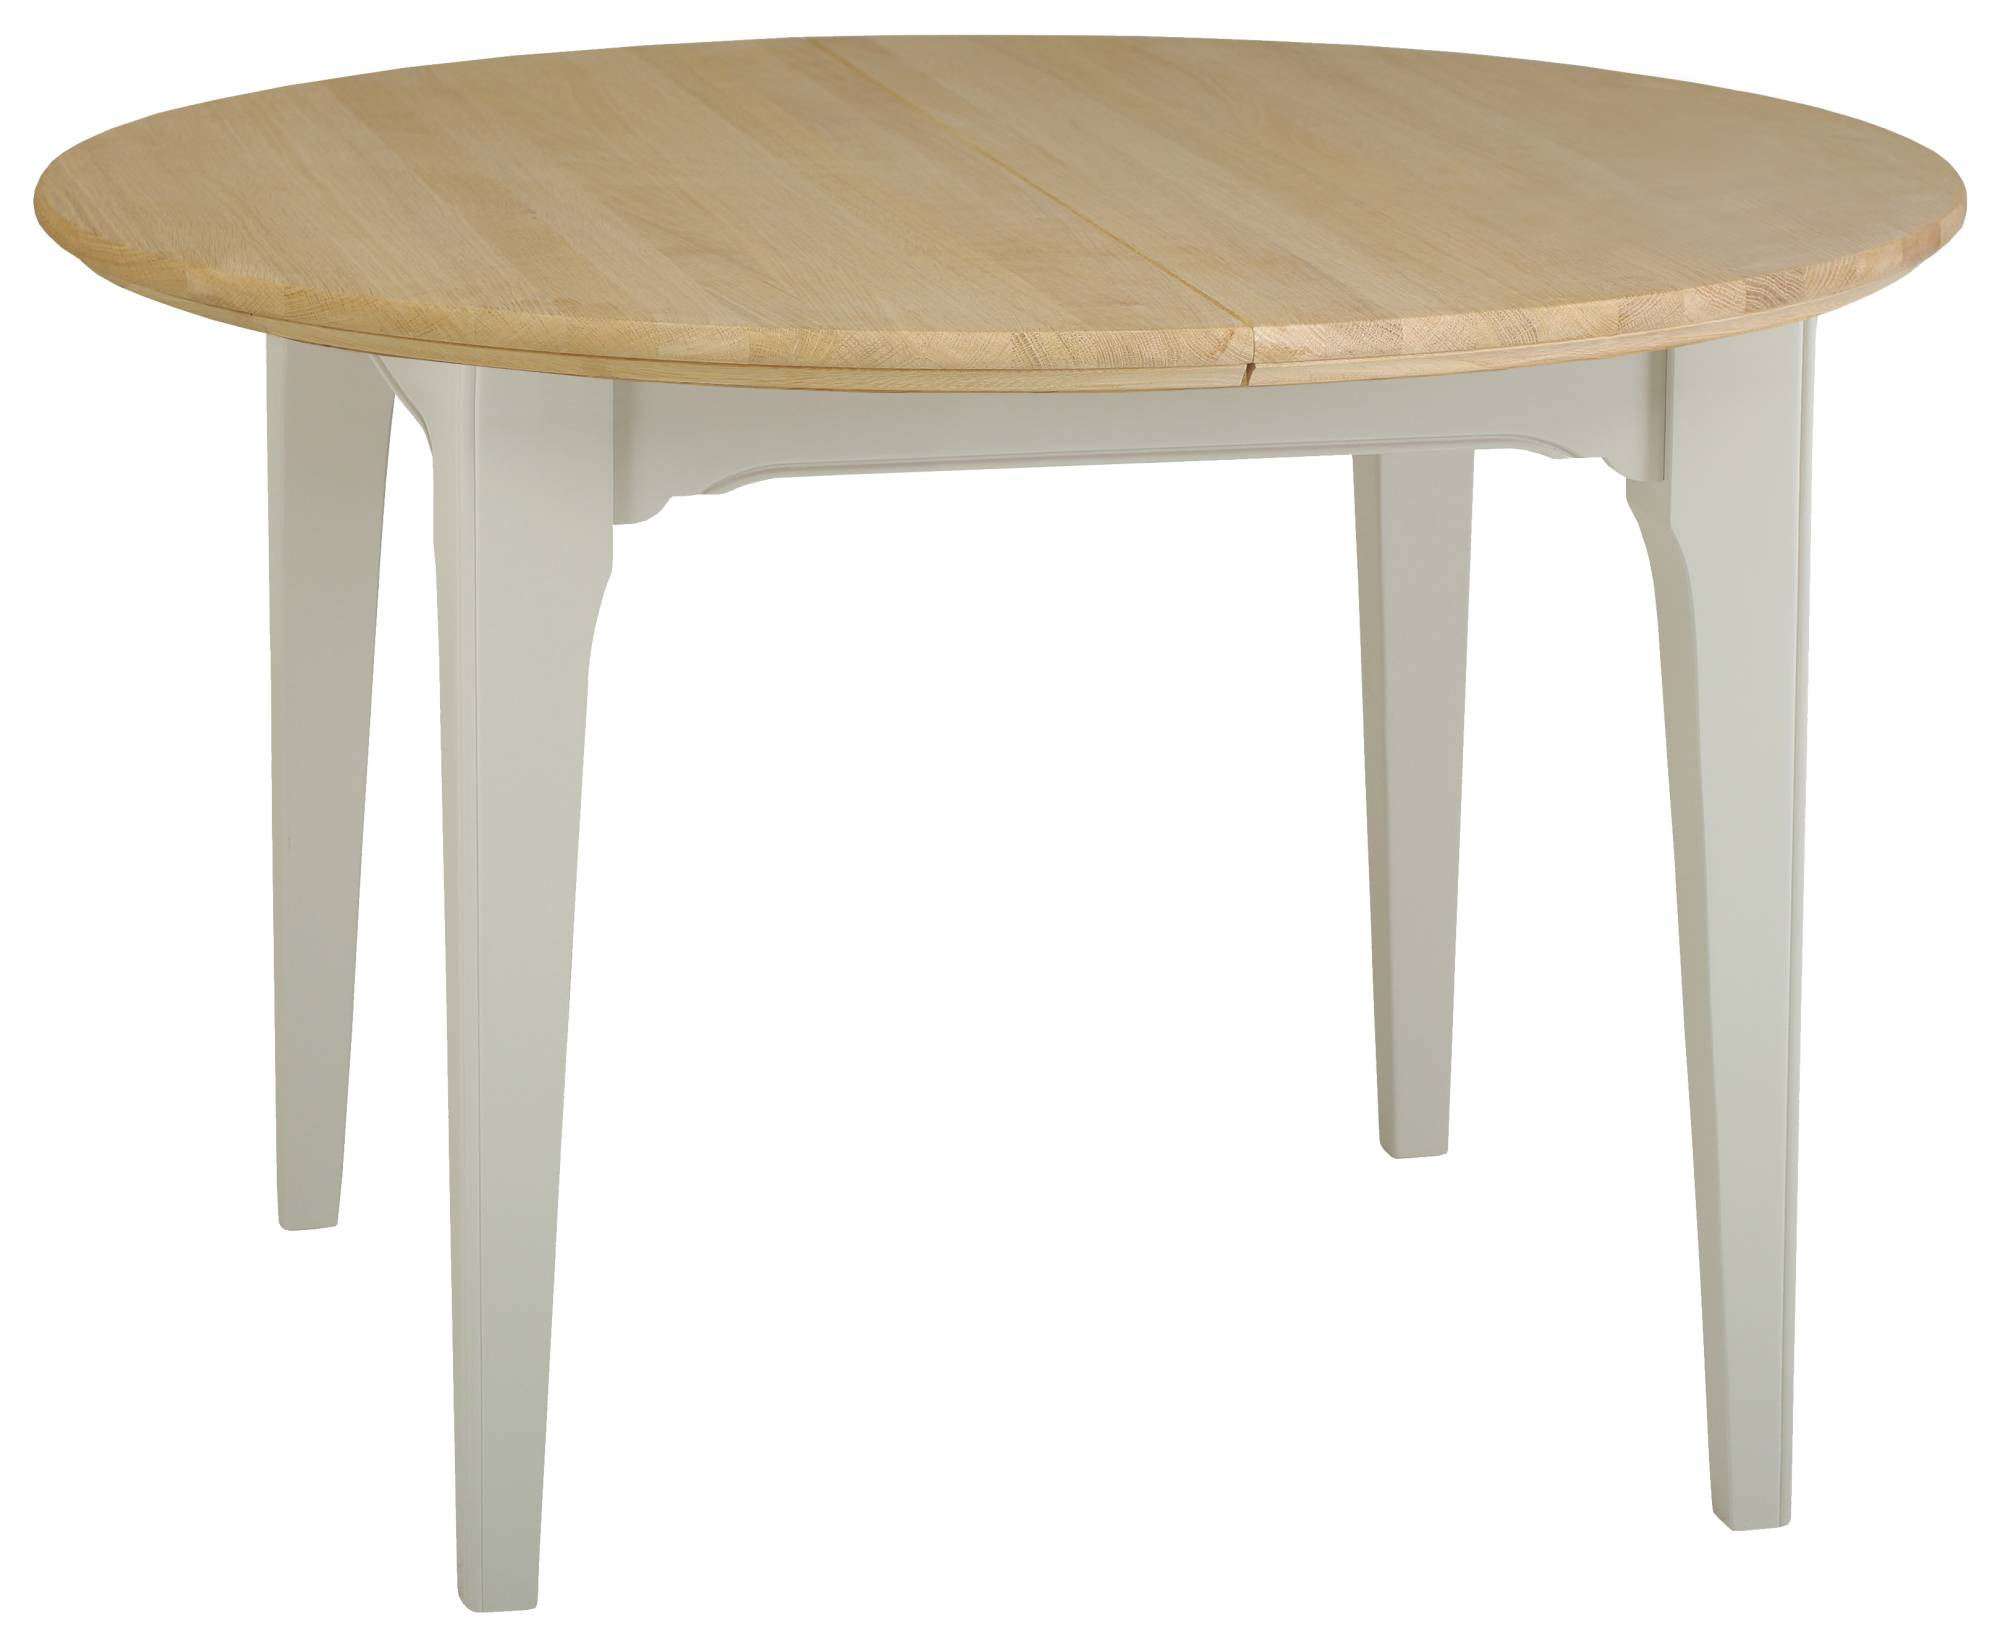 New England Round Extending Dining Table